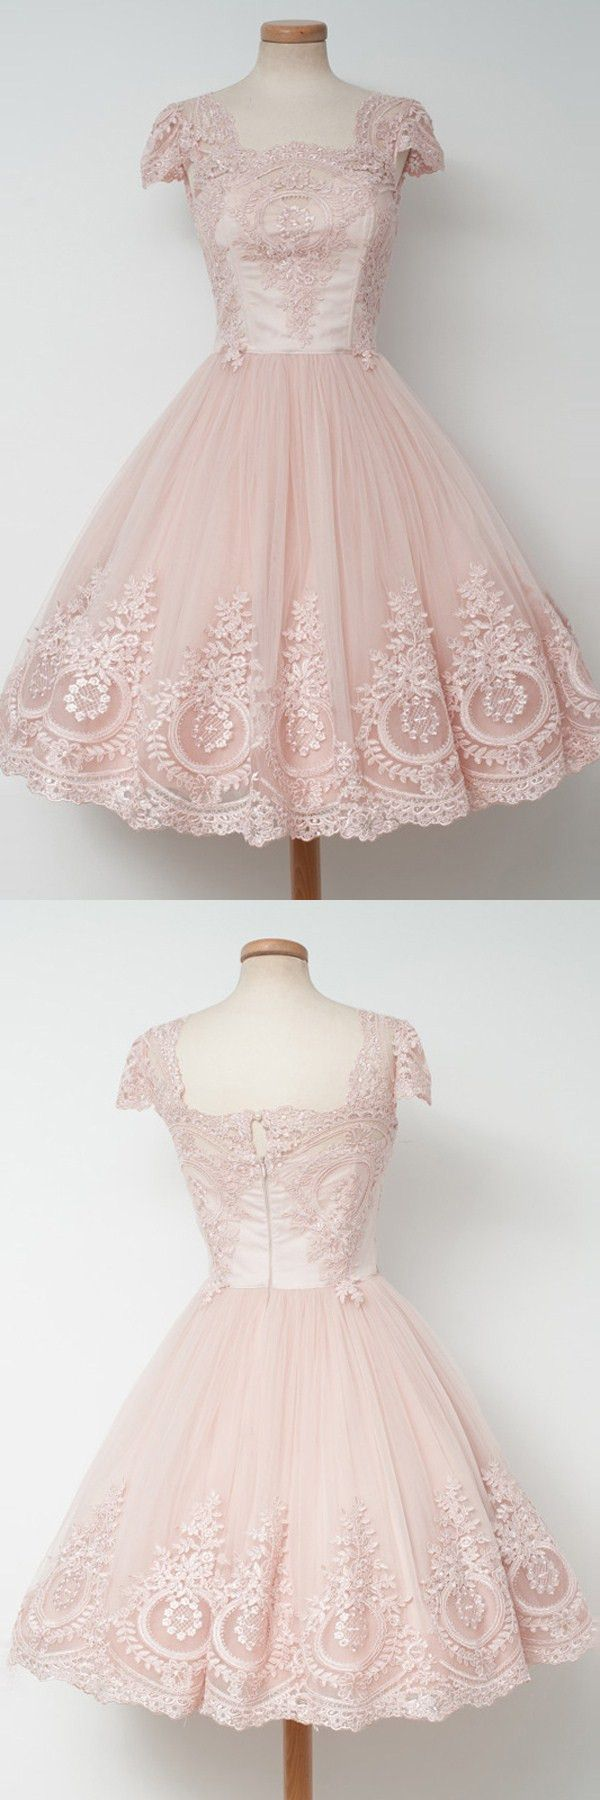 homecoming dresses, vintage party dresses with appliques, cheap vintage dresses, vestidos